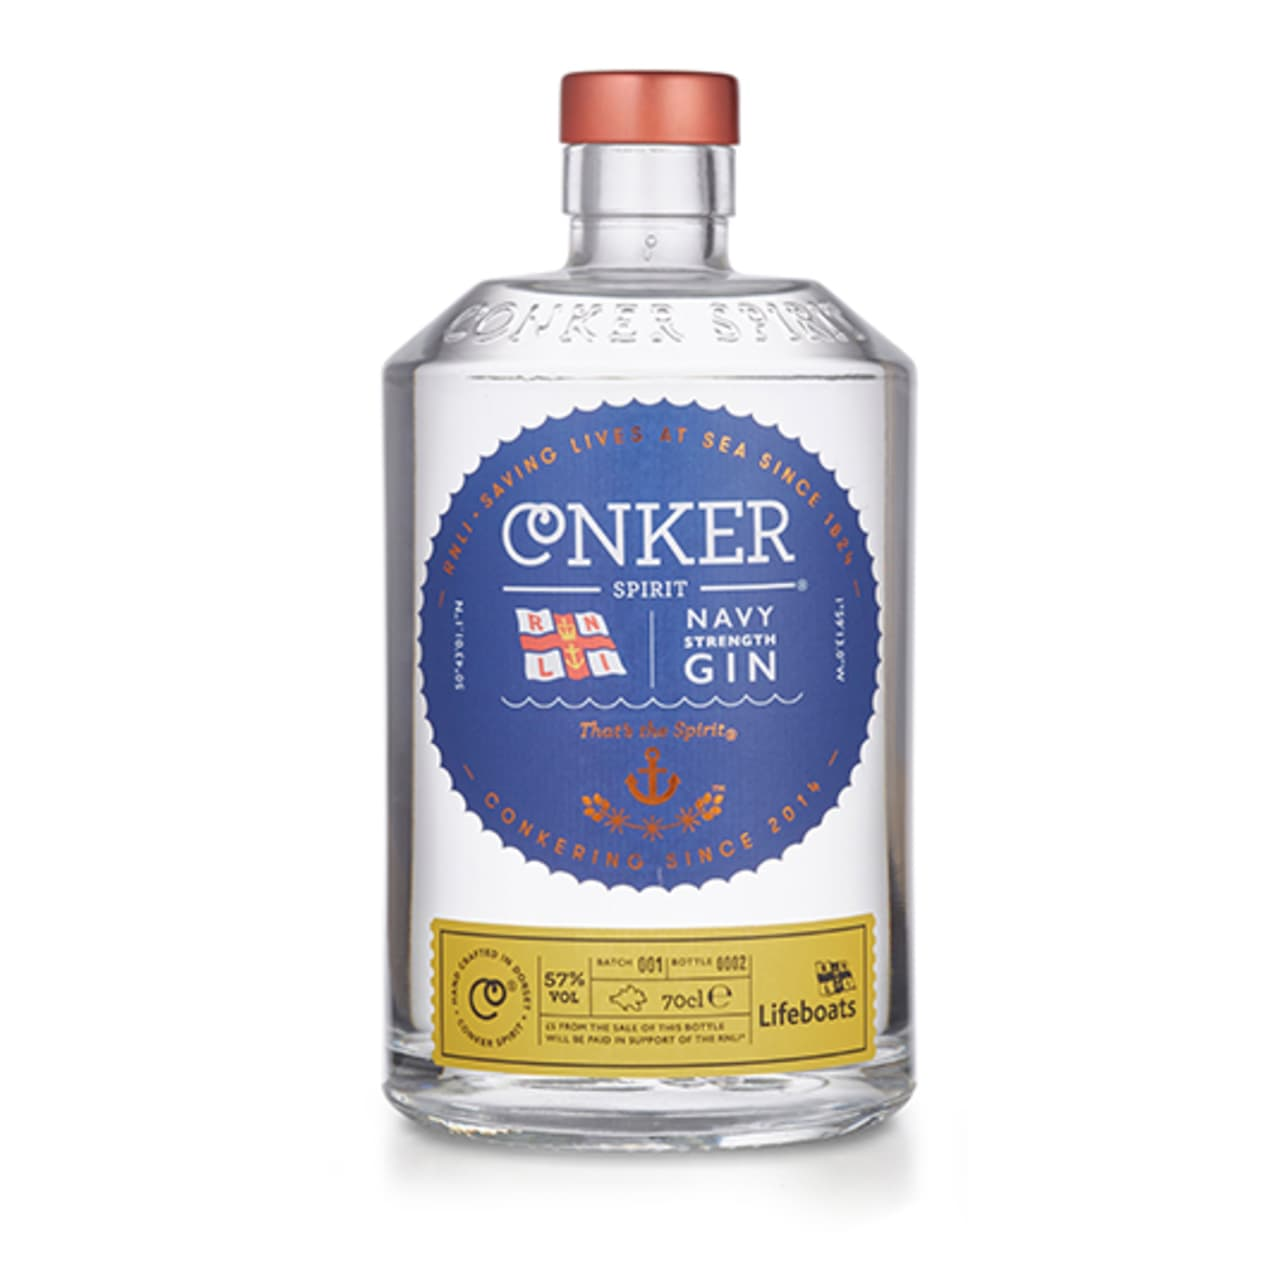 Product Image - Conker RNLI Navy Strength Gin